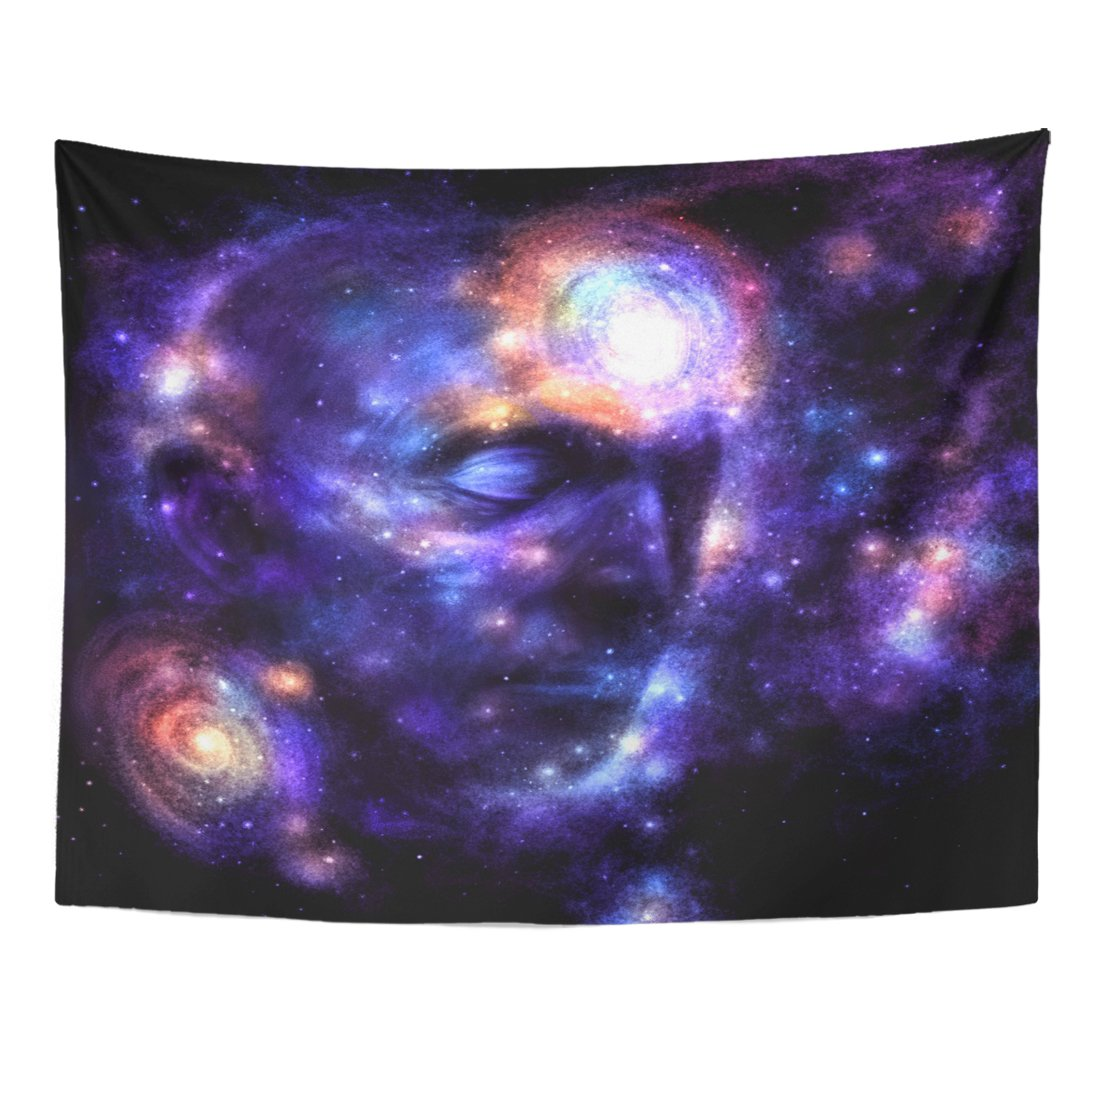 TOMPOP Tapestry Purple Yoga Human Head in Space Brain Power Meditation Galaxy Blue Paranormal Love Home Decor Wall Hanging for Living Room Bedroom Dorm 60x80 Inches